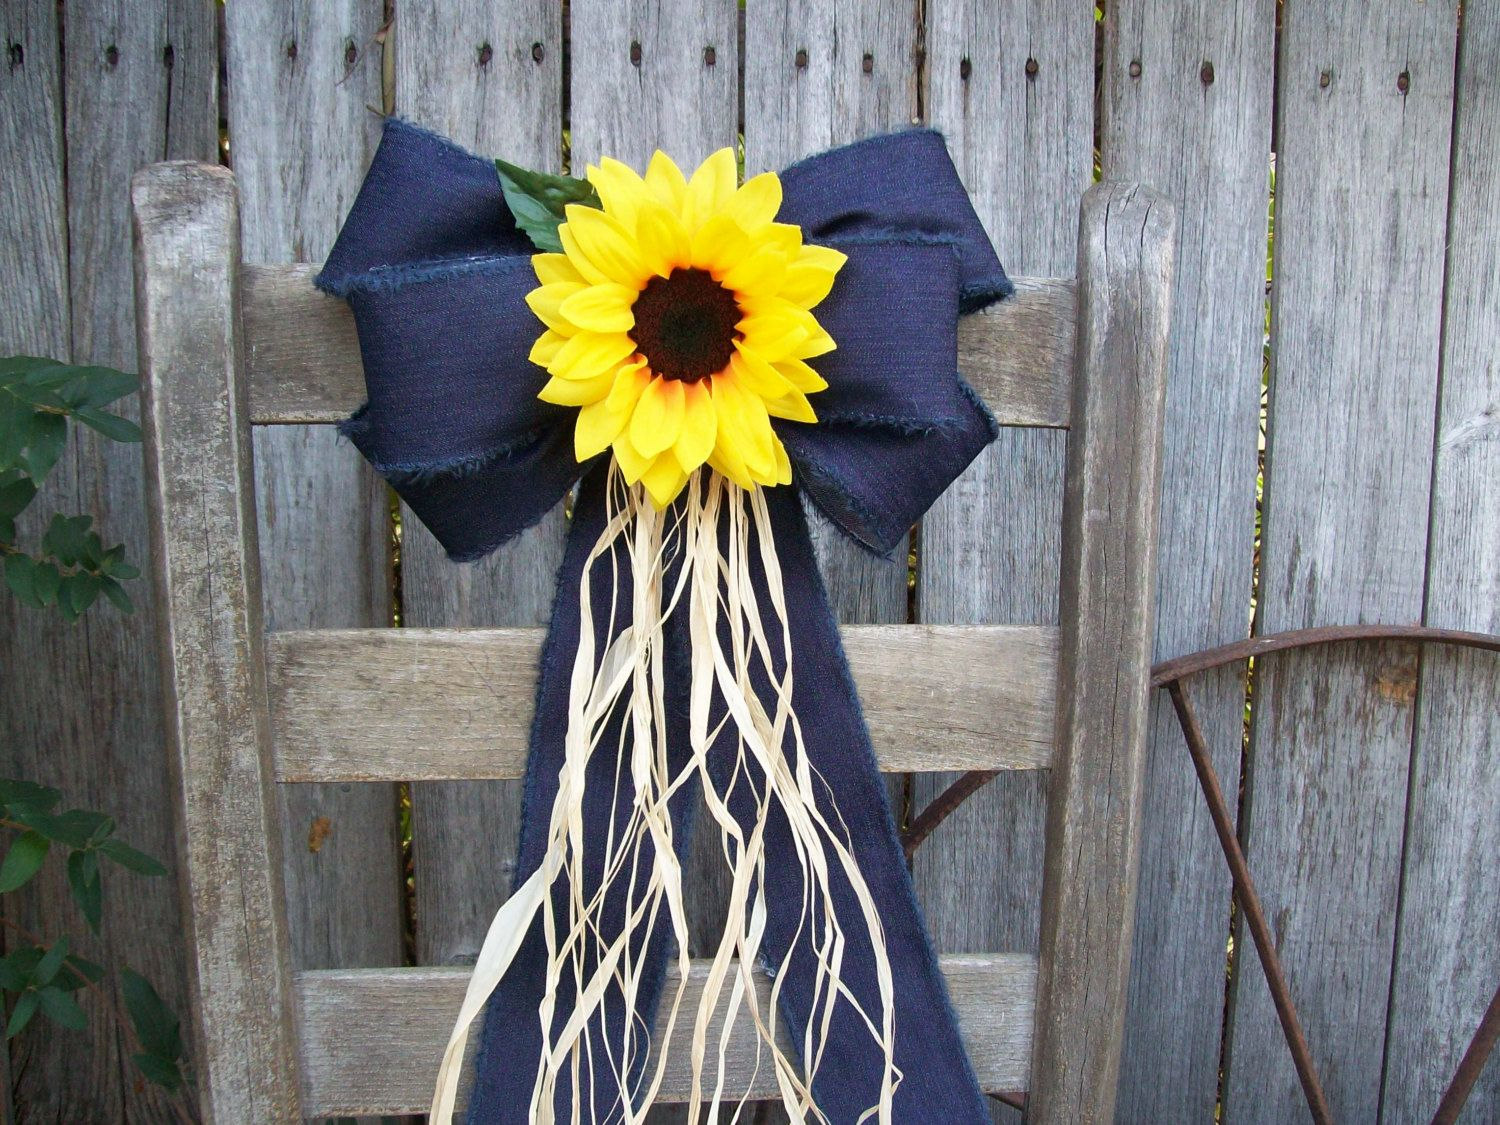 Sunflowers Sunflower and Denim Pew Bow Sunflower by